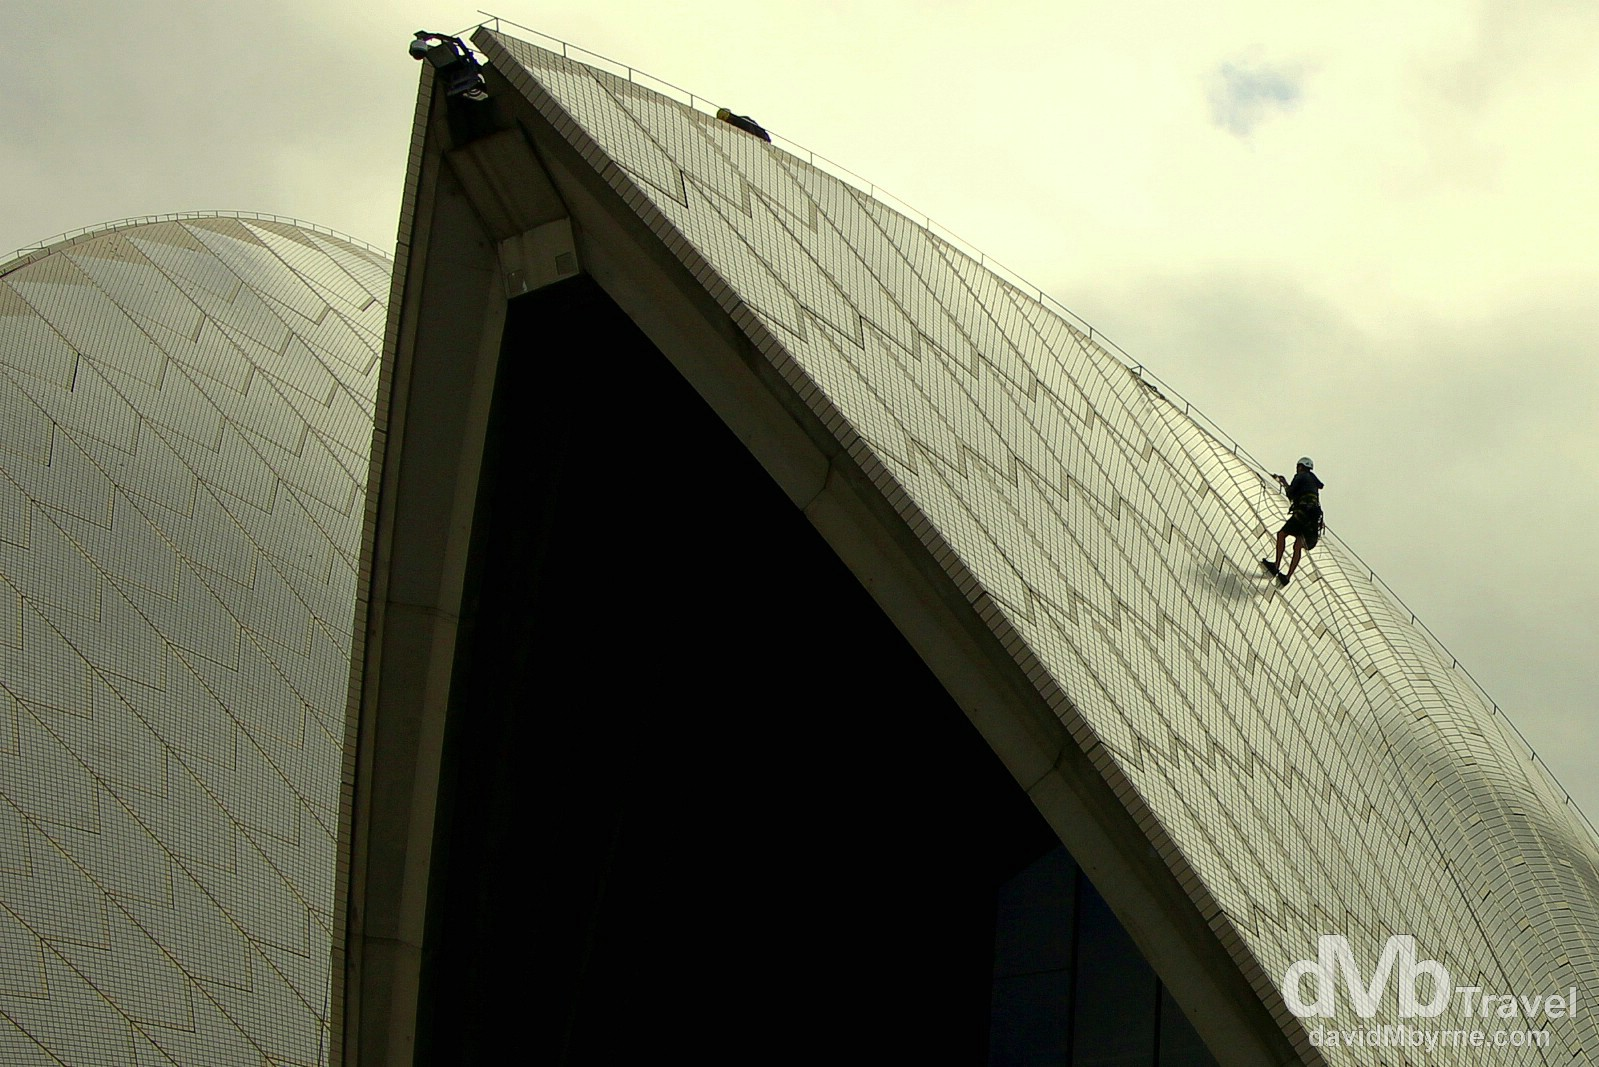 A worker abseiling on the sails of the Opera House in Sydney, Australia. June 5th 2012.